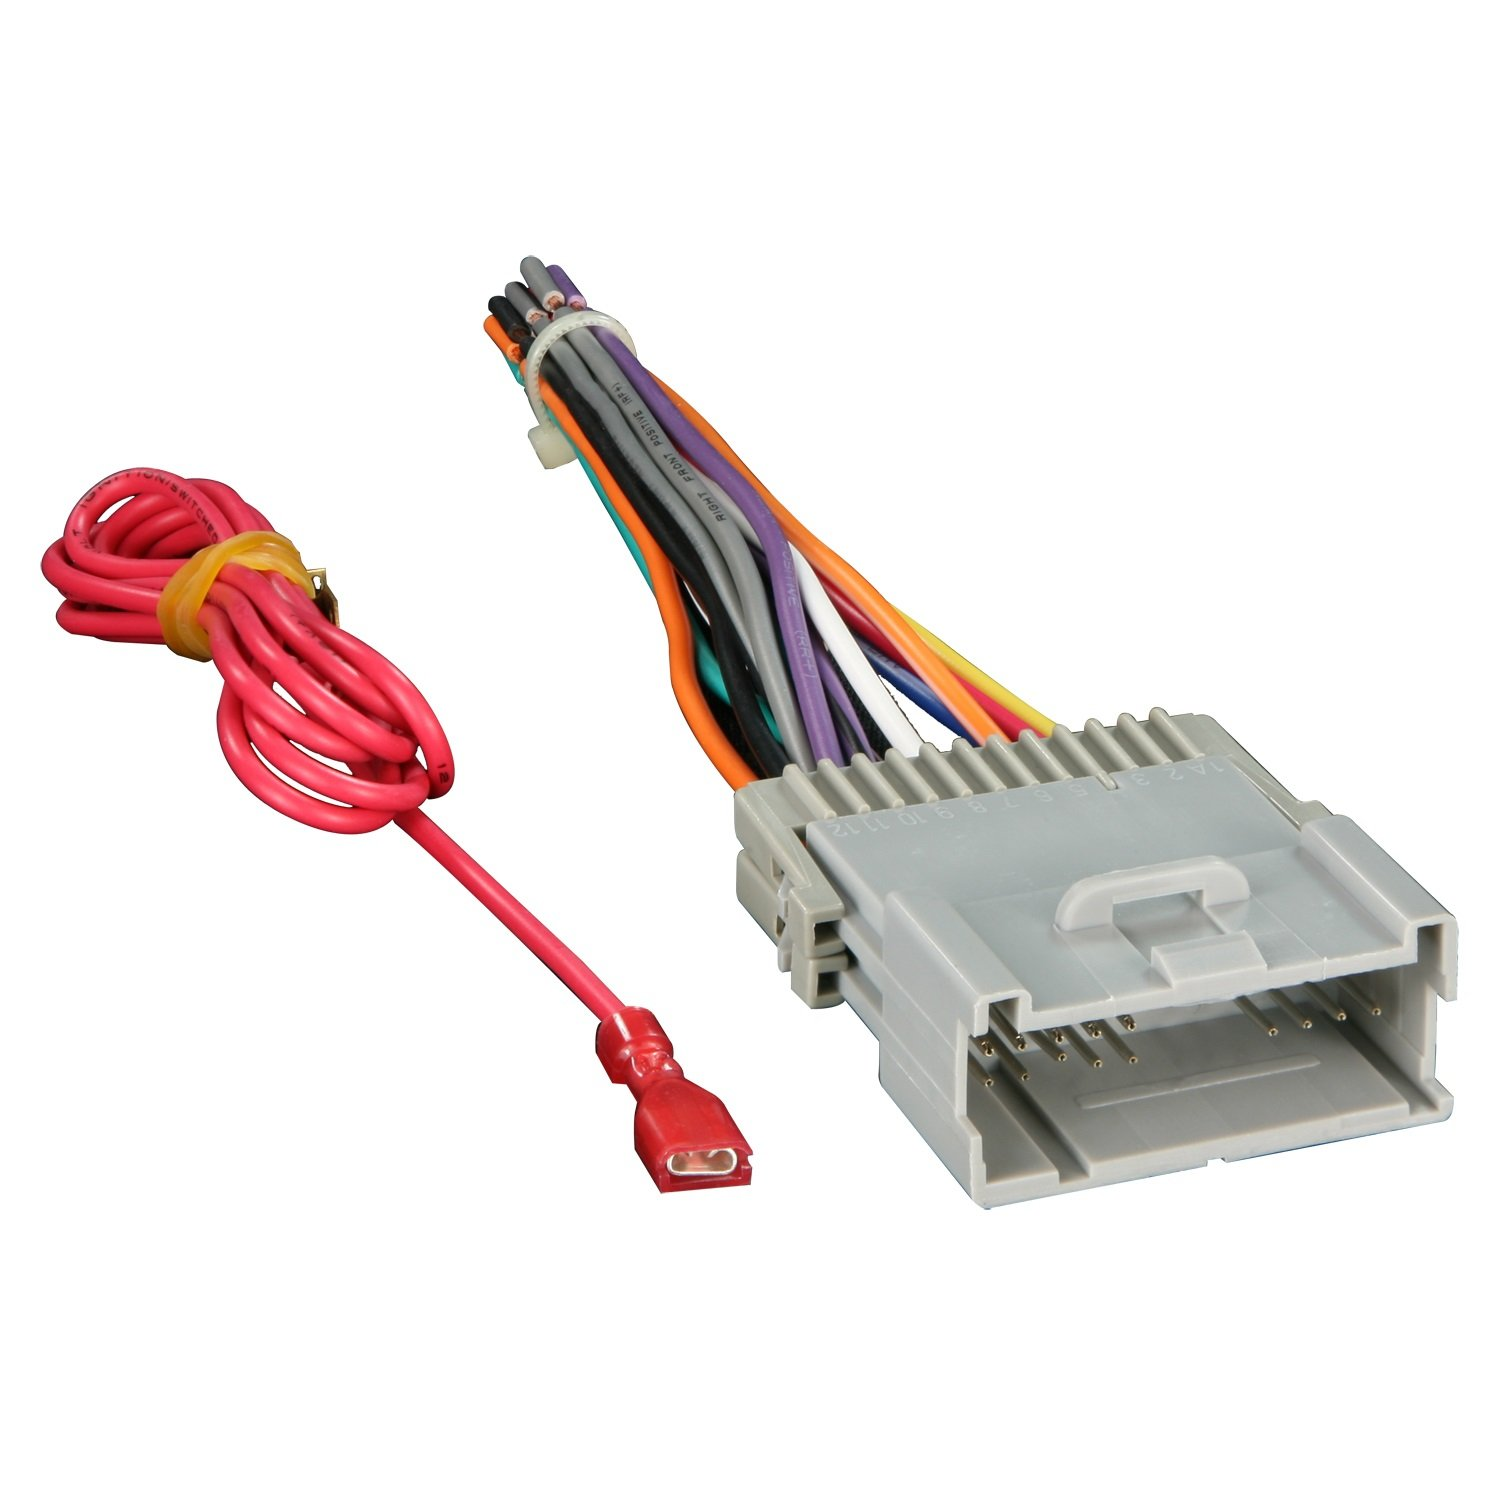 61eewxp9orL._SL1500_ amazon com metra 70 2003 radio wiring harness for gm 98 08 gm wiring harness at gsmx.co